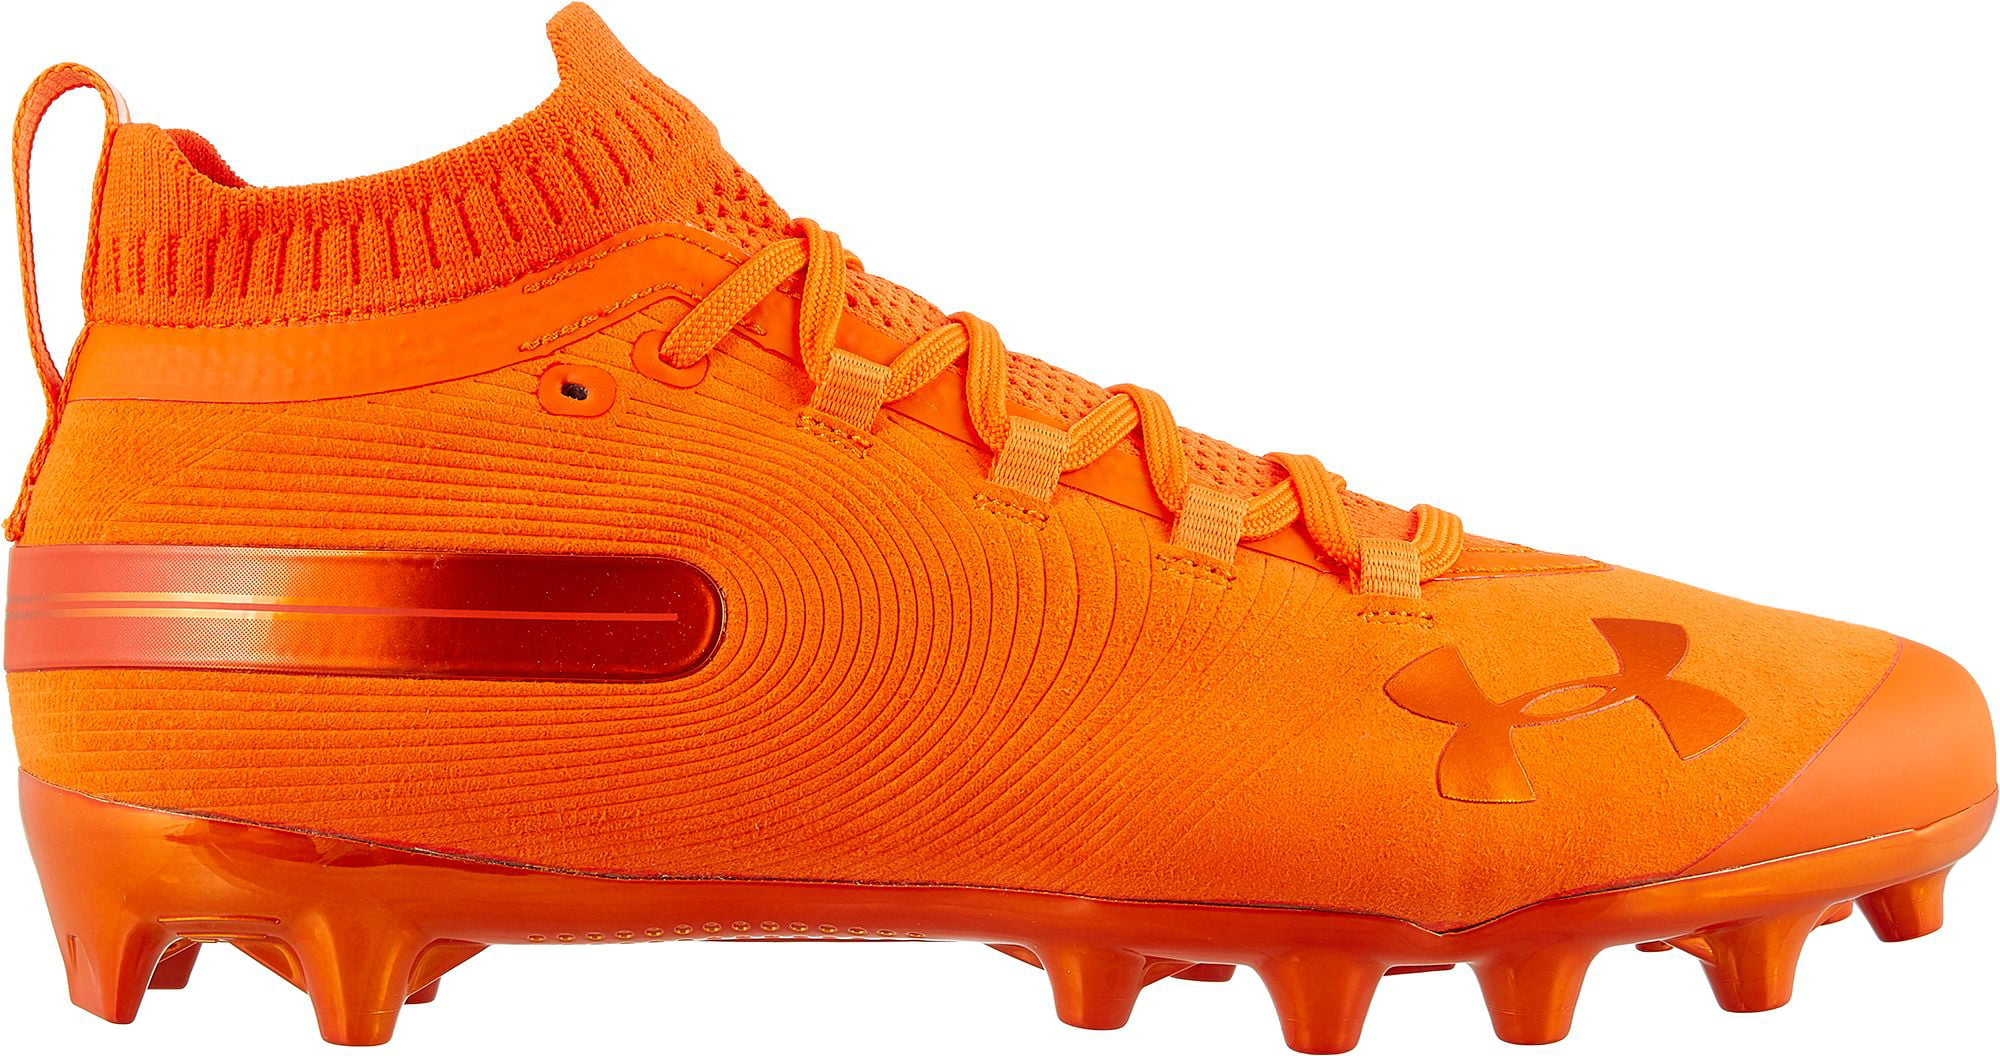 Under Armour Men S Spotlight Suede Football Cleats Red Off 50 Www Ravornvillaboutique Com